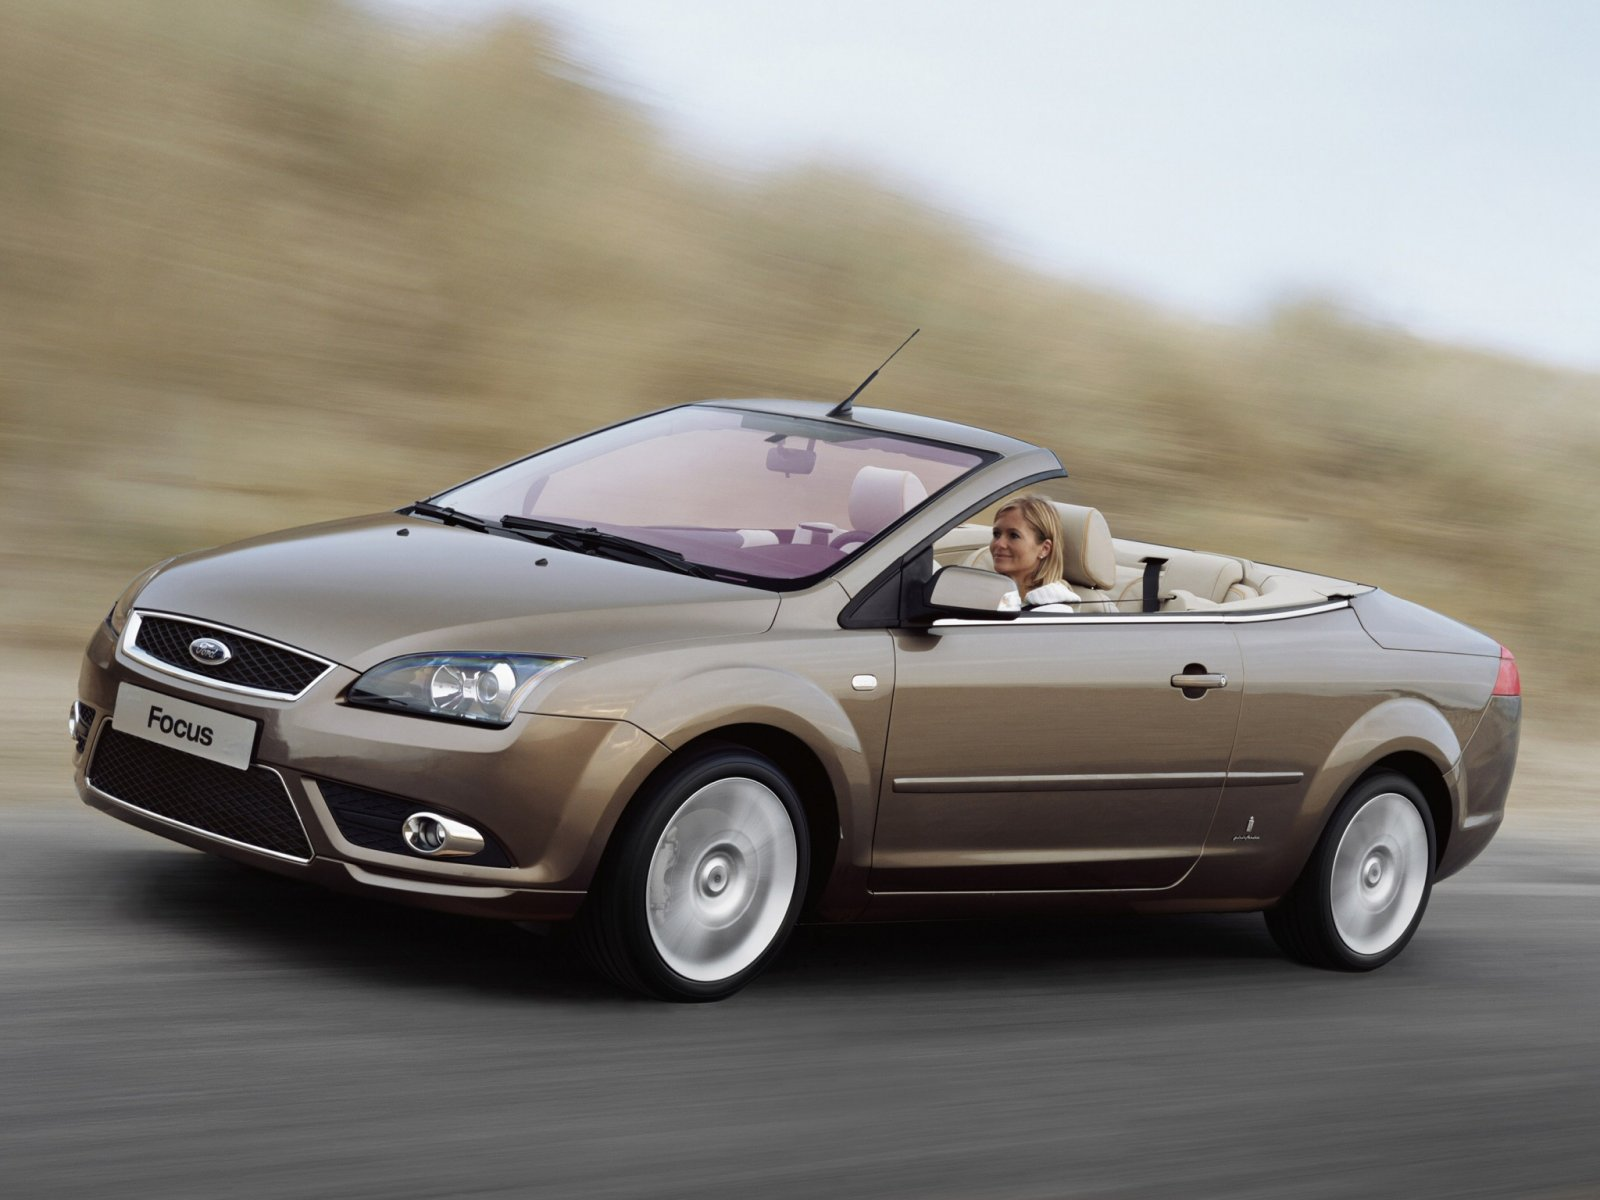 2017 Ford Focus Coupe Cabriolet photo - 2